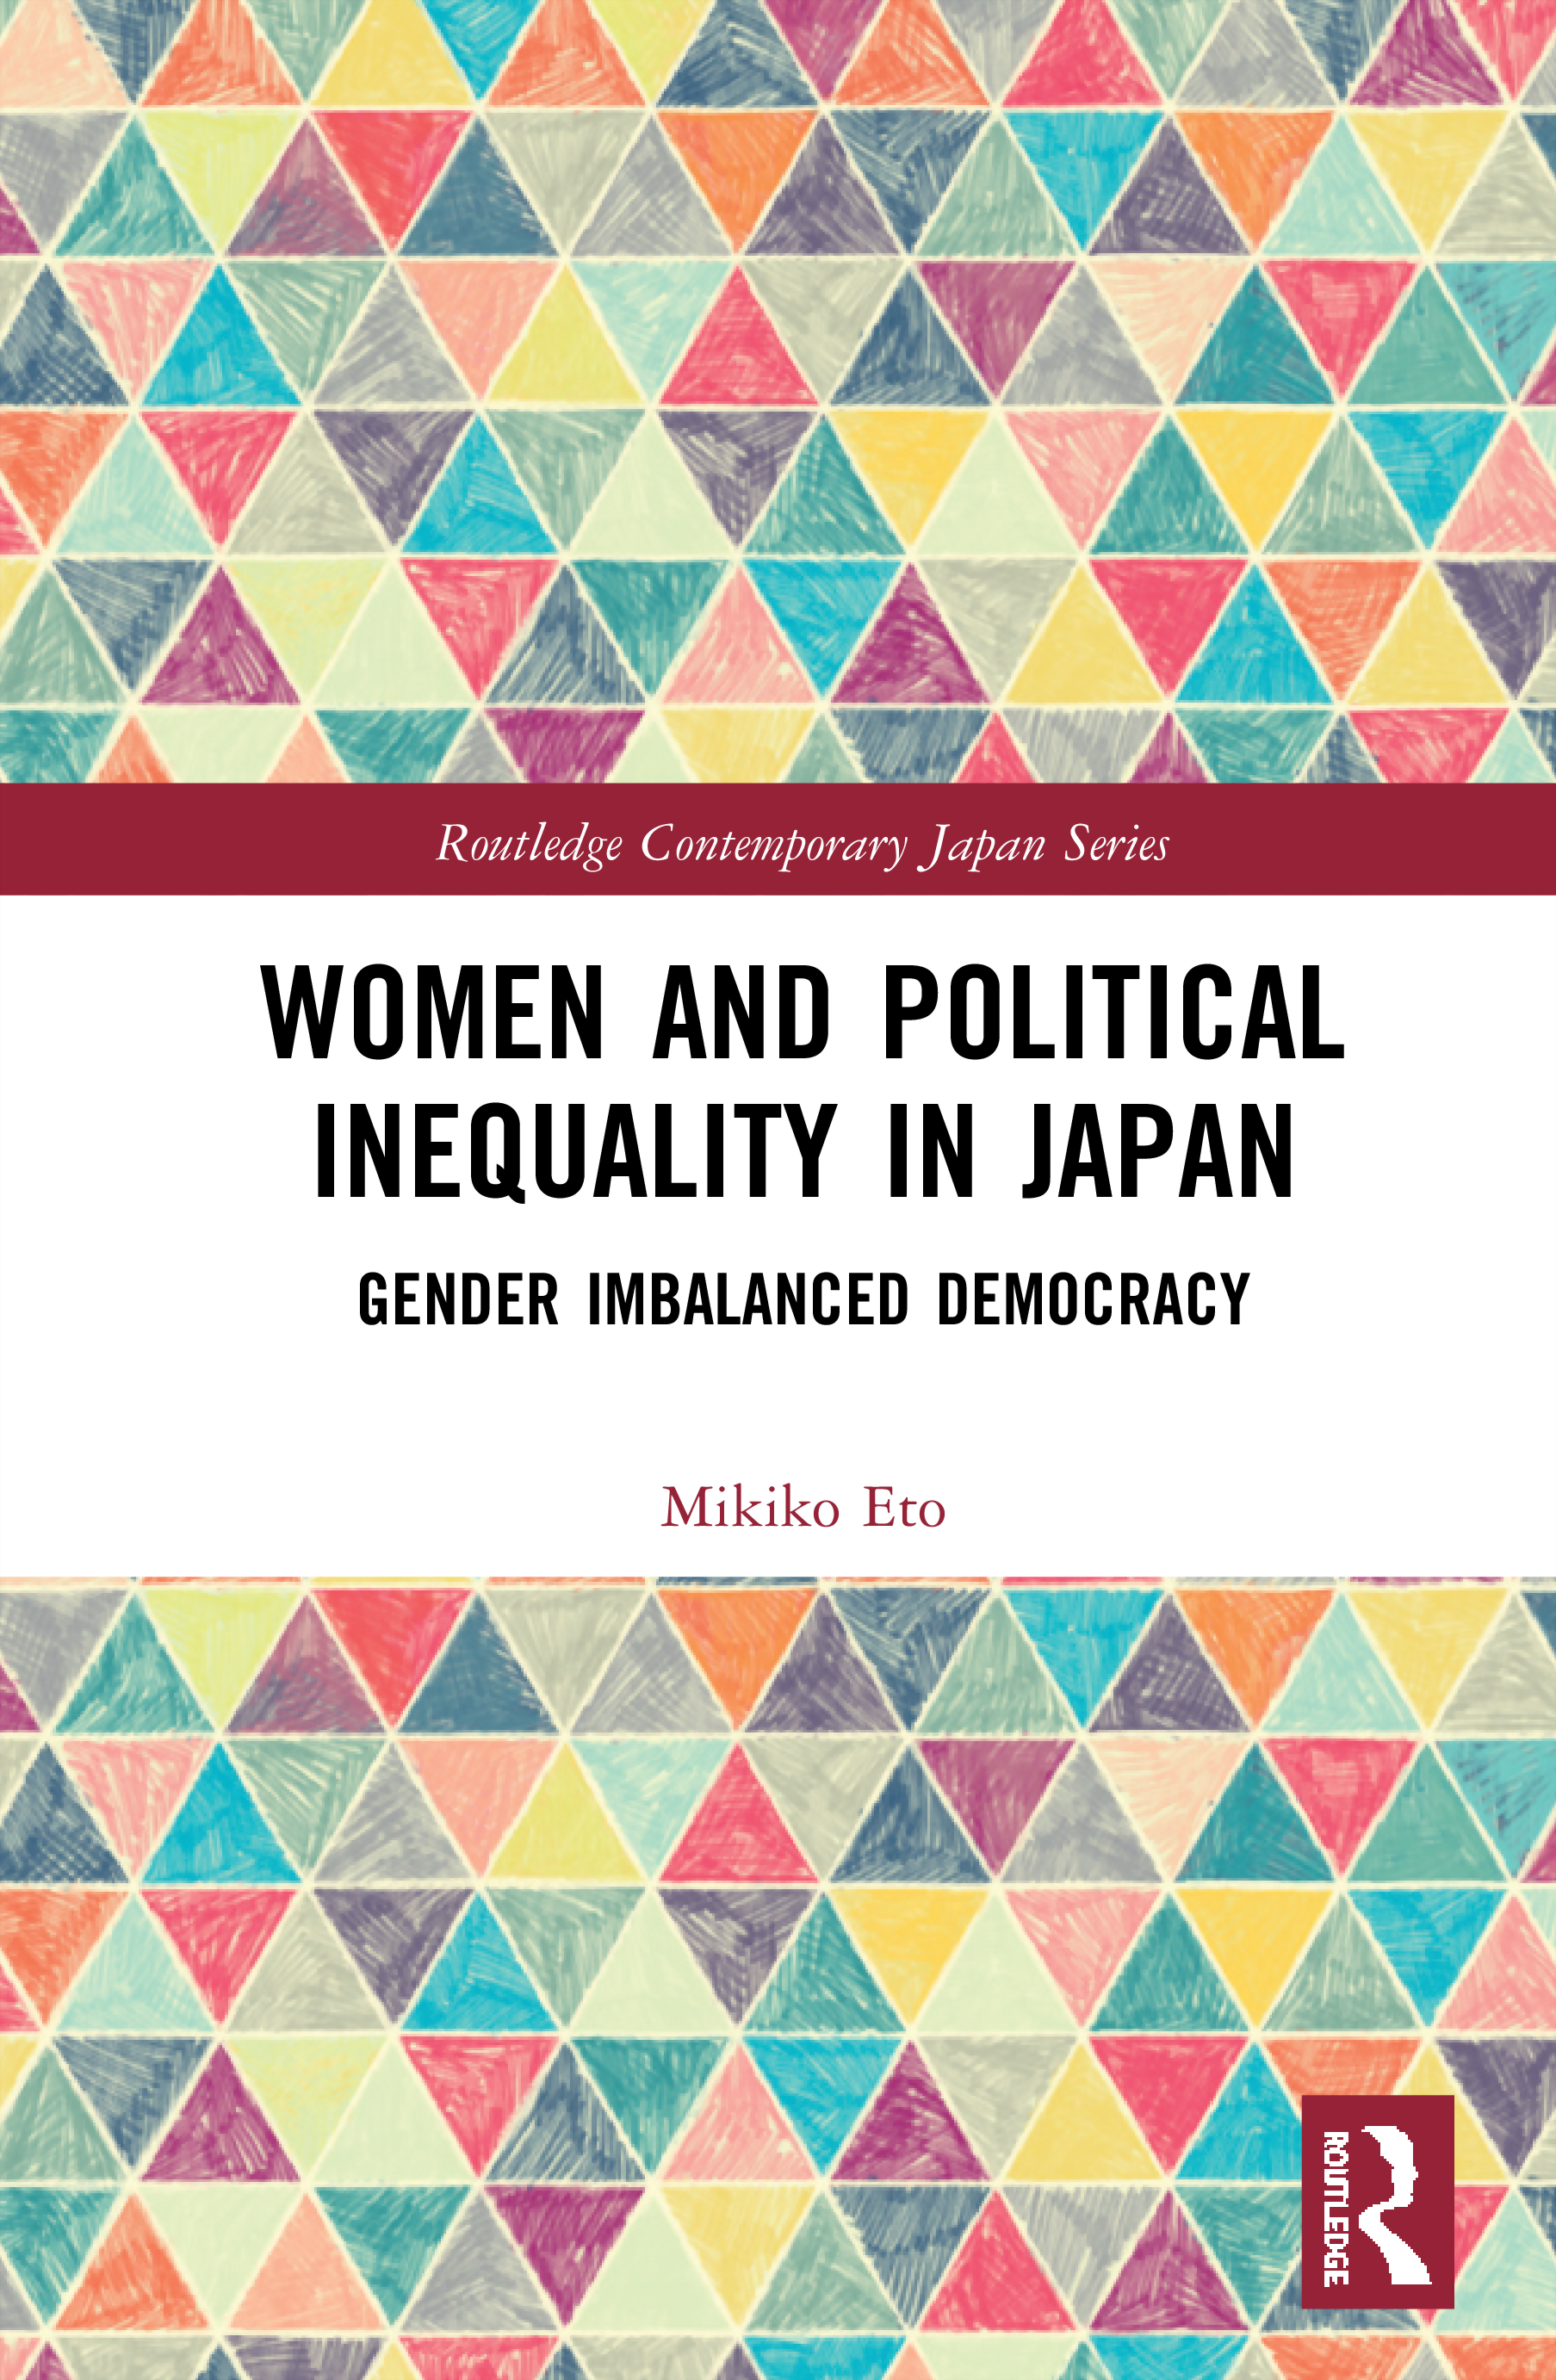 Women and Political Inequality in Japan